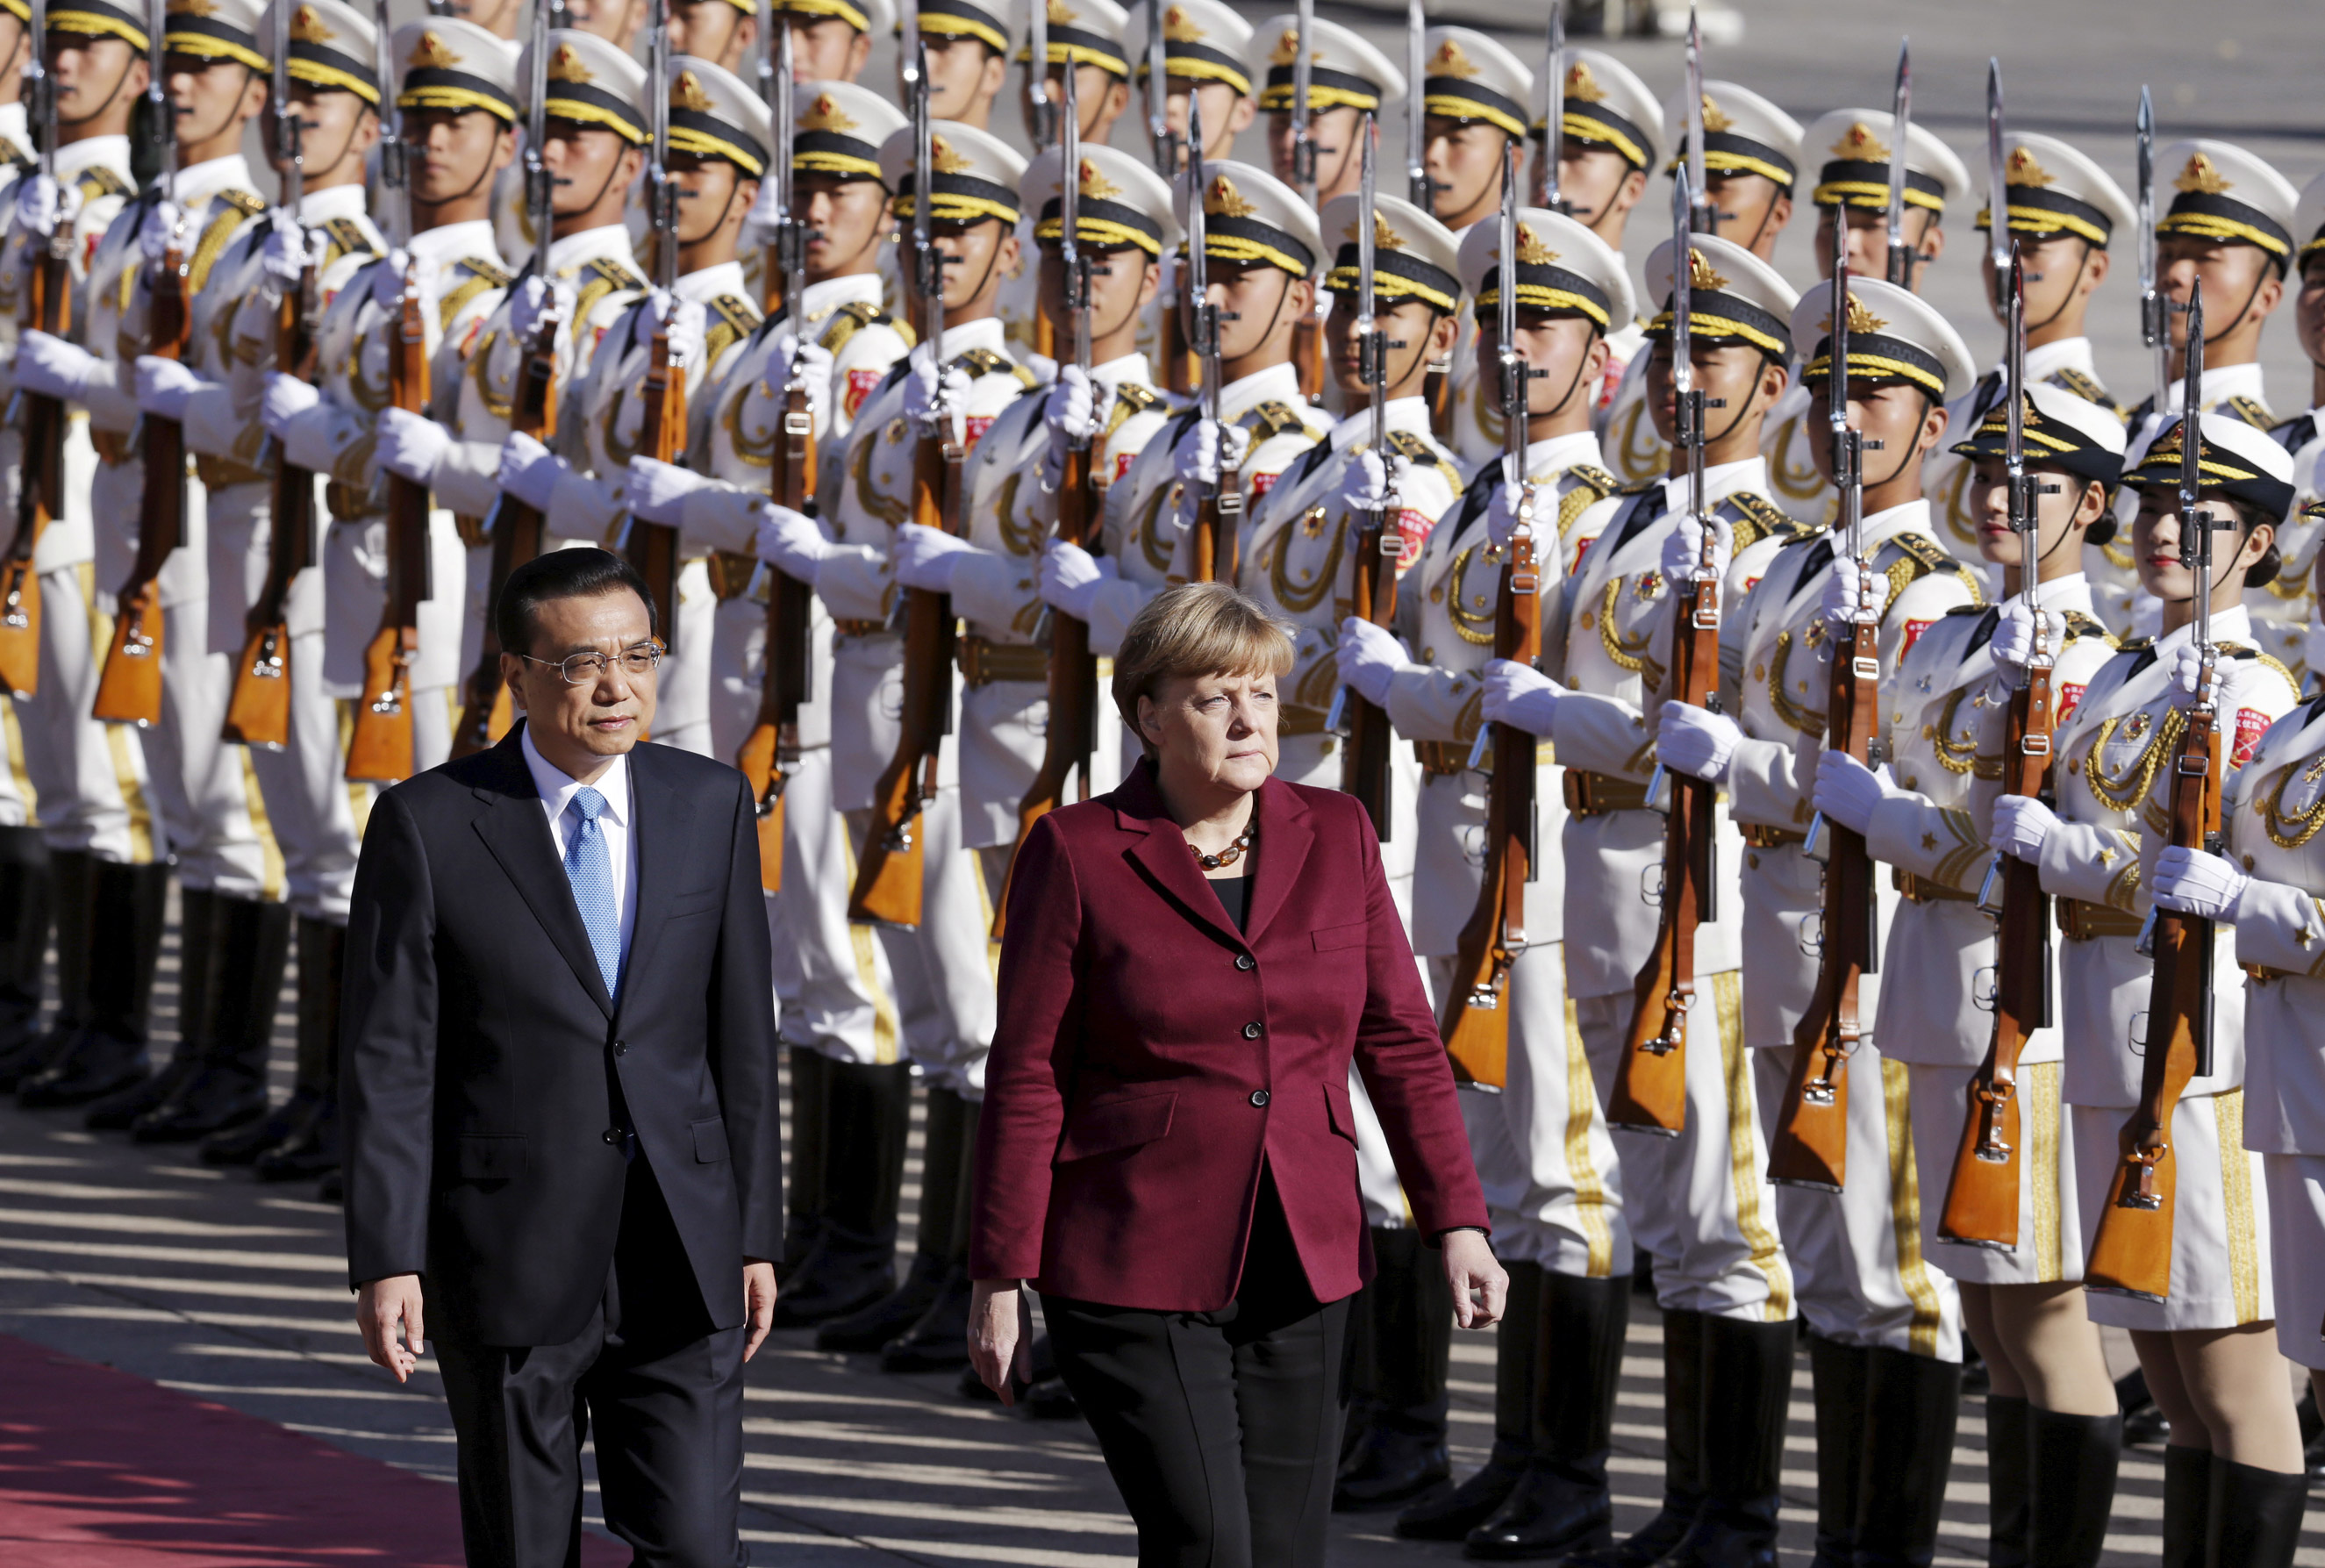 October: China's Premier Li Keqiang and Chancellor Angela Merkel inspect honor guards during a welcoming ceremony outside the Great Hall of the People in Beijing on Oct. 29, 2015.